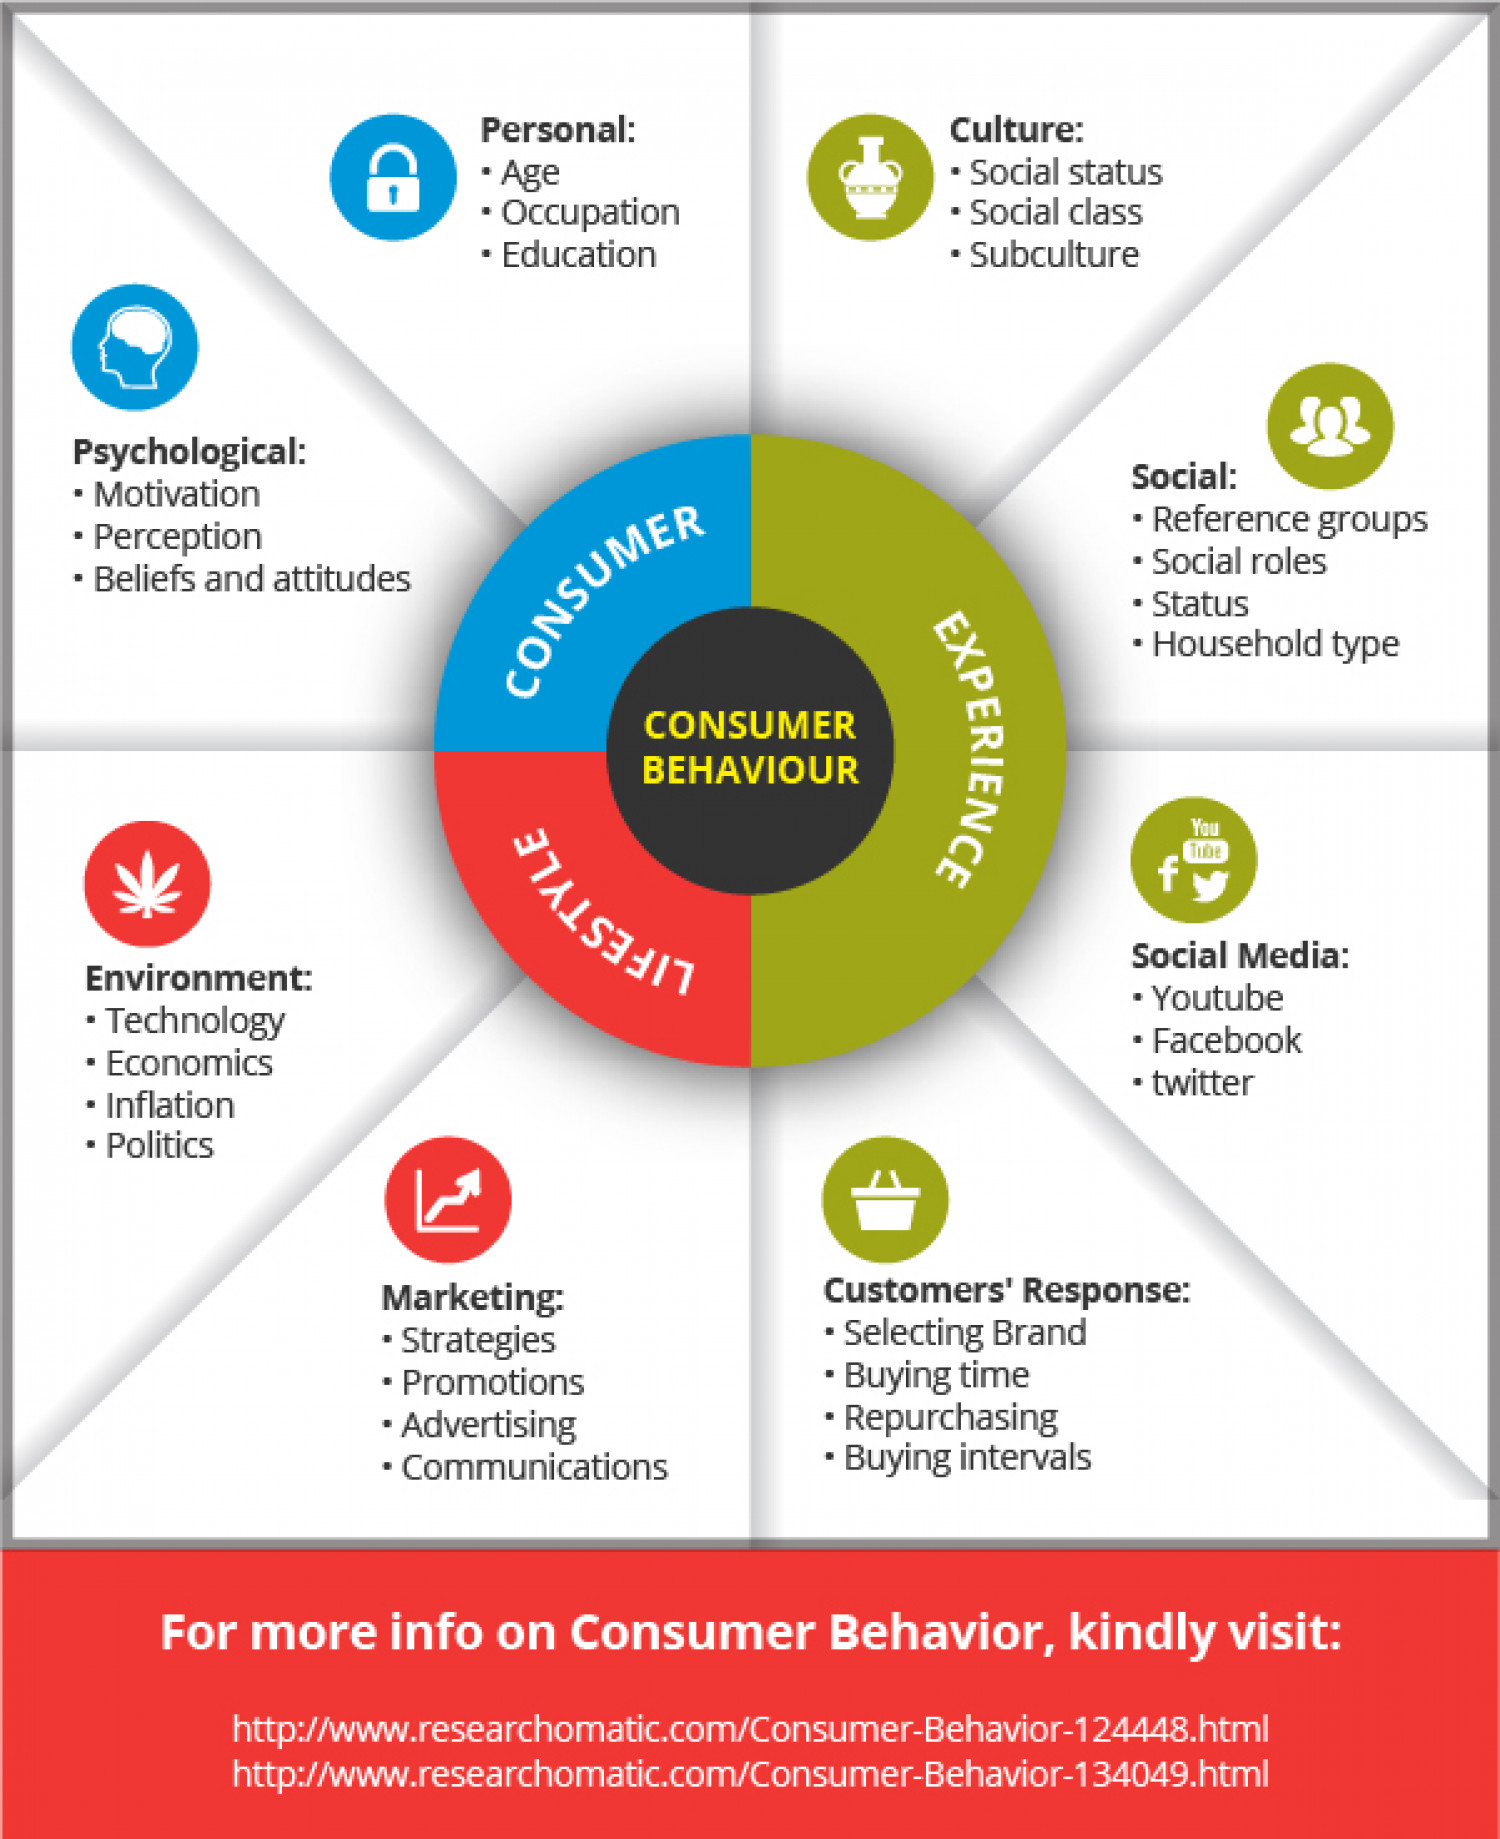 advertising and identity through consumer culture essay For global branding and advertising are included keywords culture, dimensions, personality, self, emotion, global branding cross-cultural consumer behavior framework (adapted from manrai and manrai personal traits are added through communica-tion strategy.